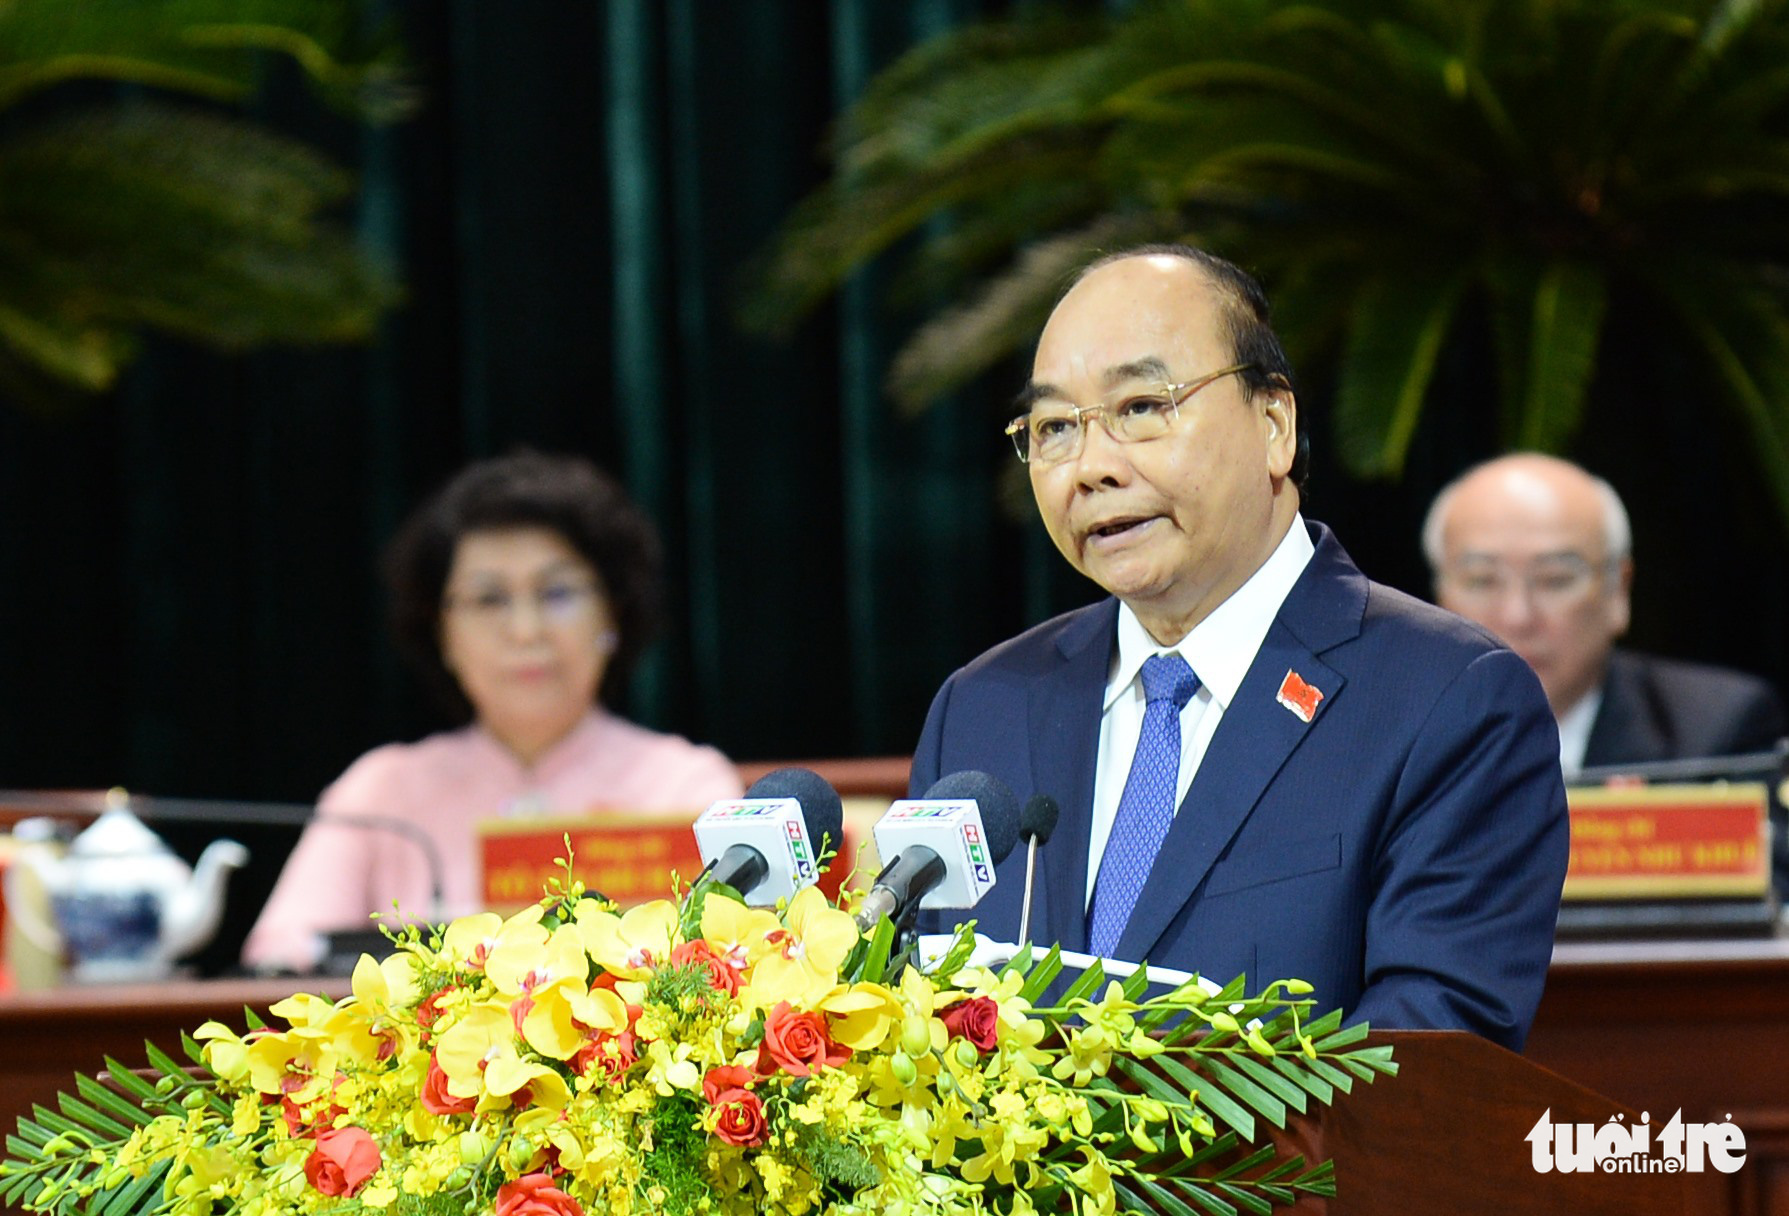 Prime Minister Nguyen Xuan Phuc speaks at the Ho Chi Minh City's 11th Party Congress on October 15, 2020. Photo: Tu Trung / Tuoi Tre